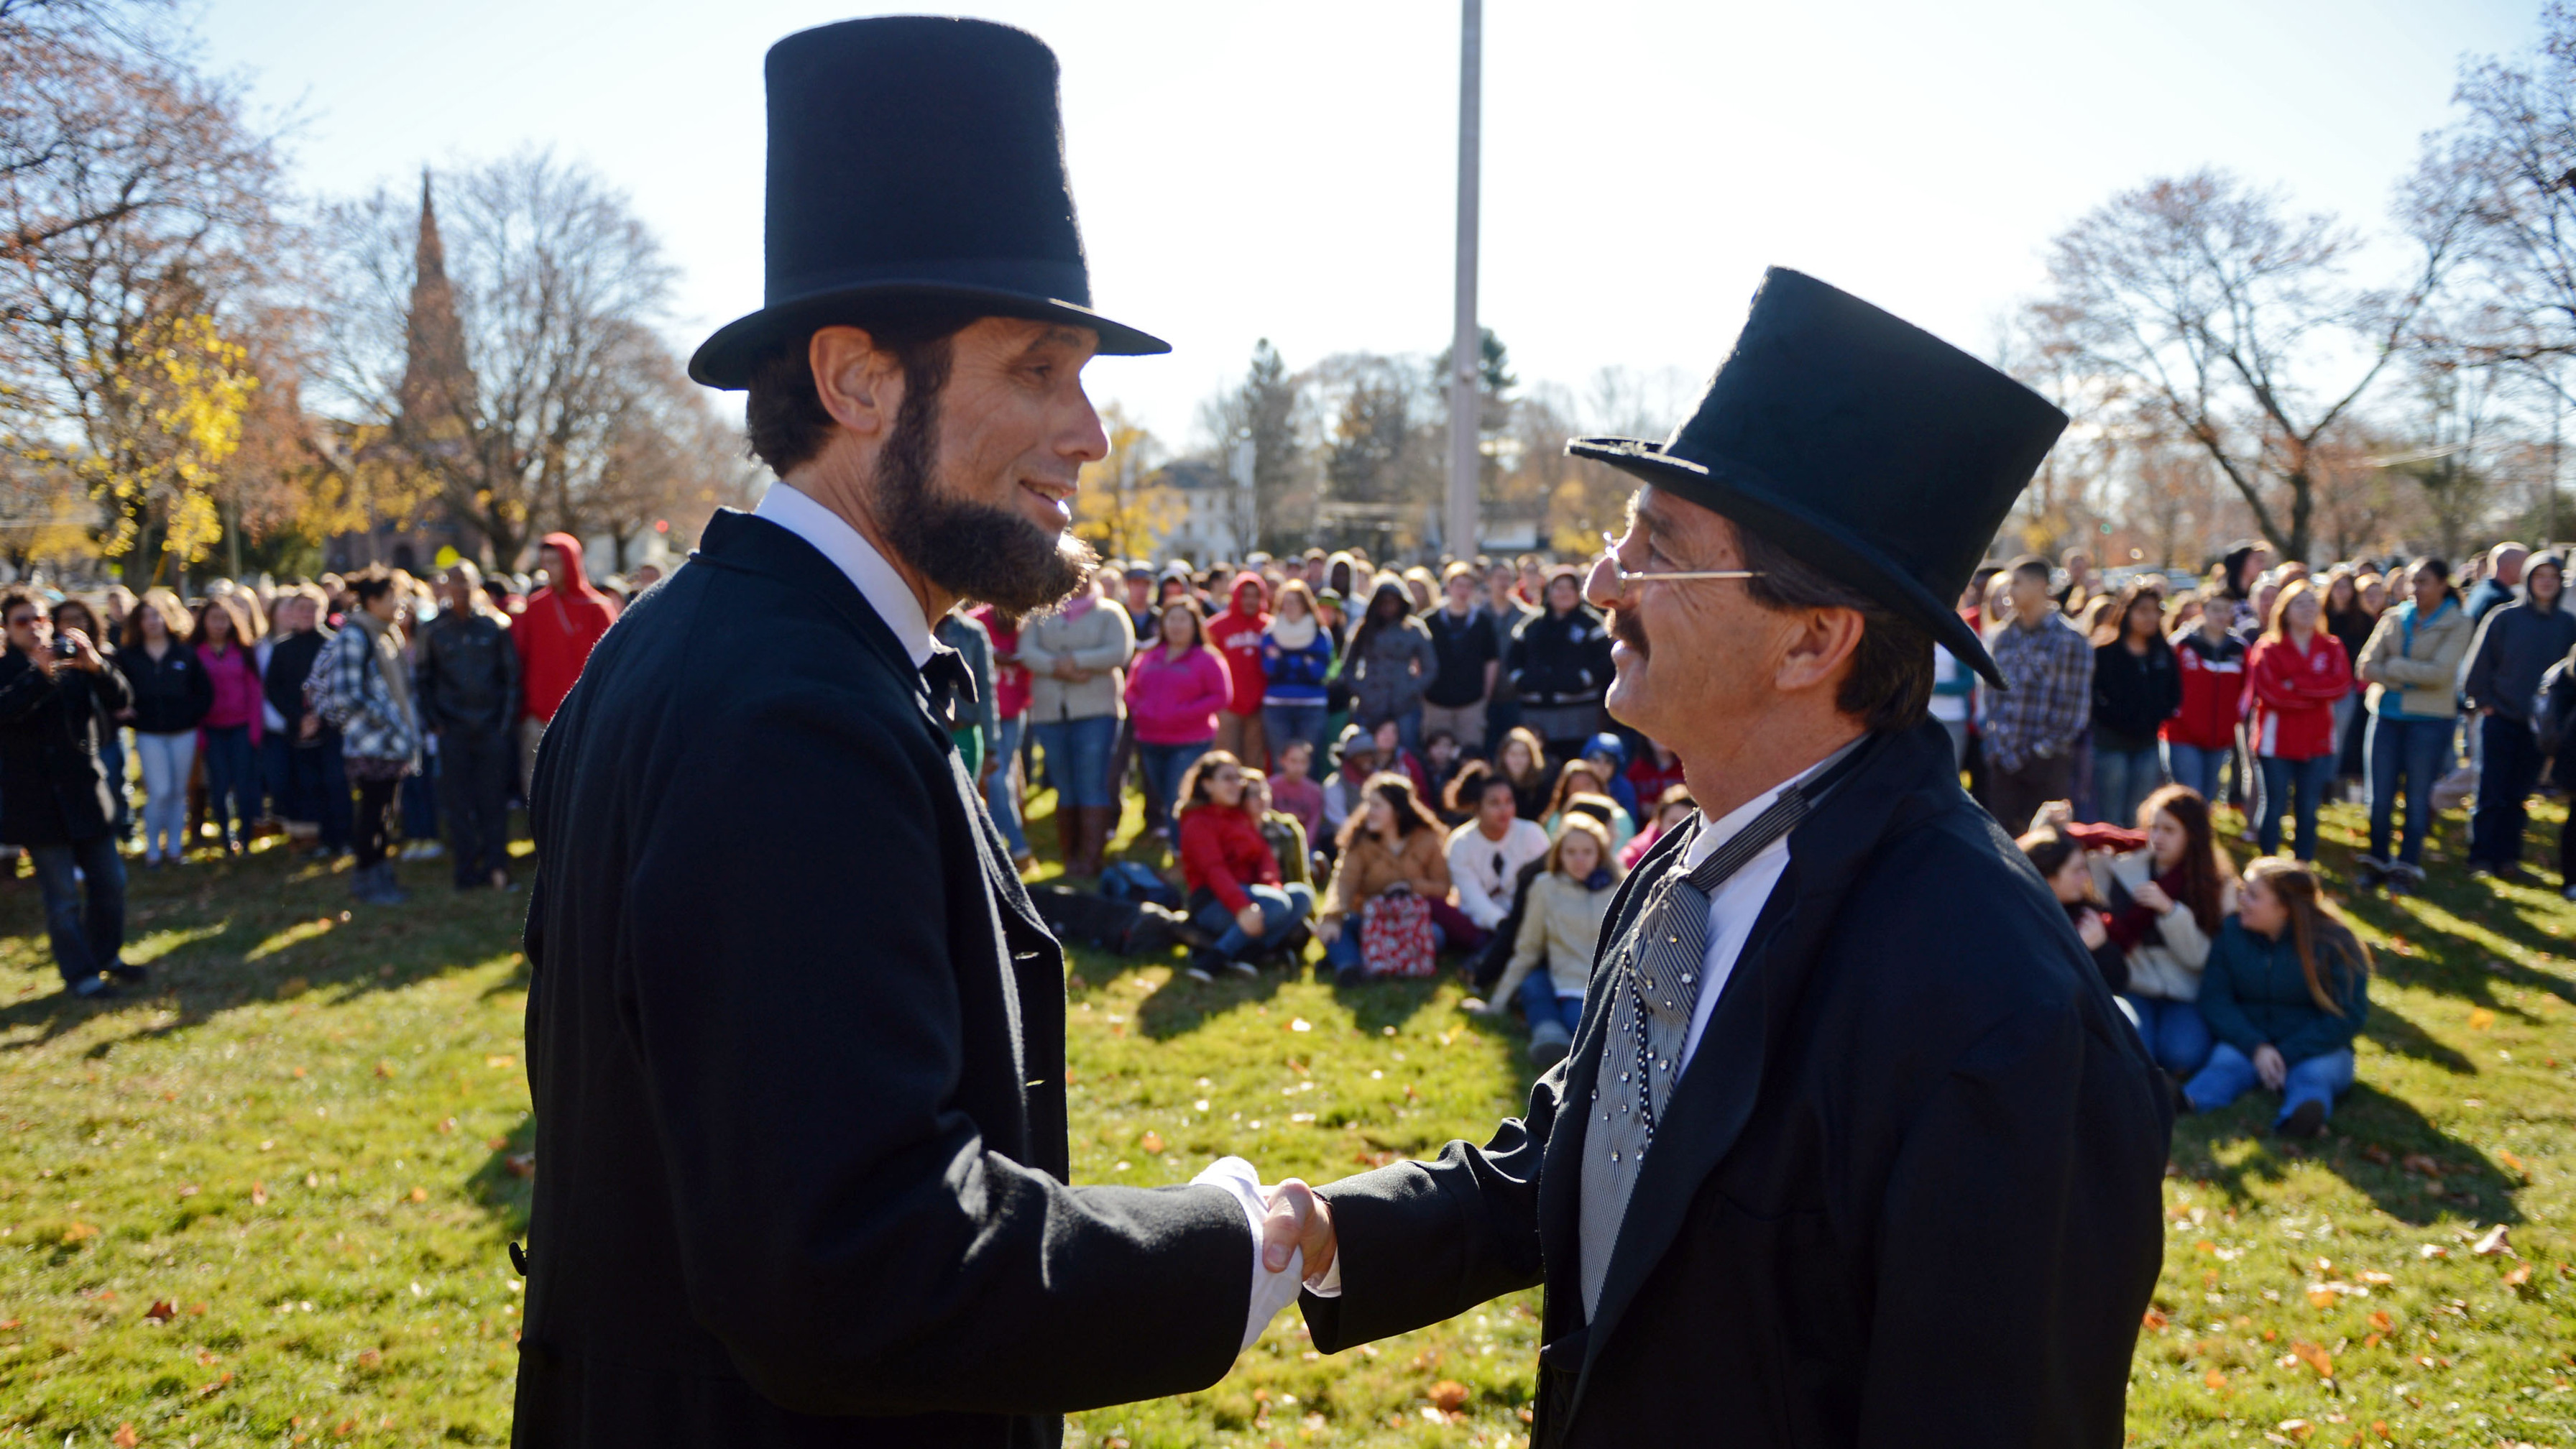 years later lincoln s speech long remembered portland press 150 years later lincoln s speech long remembered portland press herald